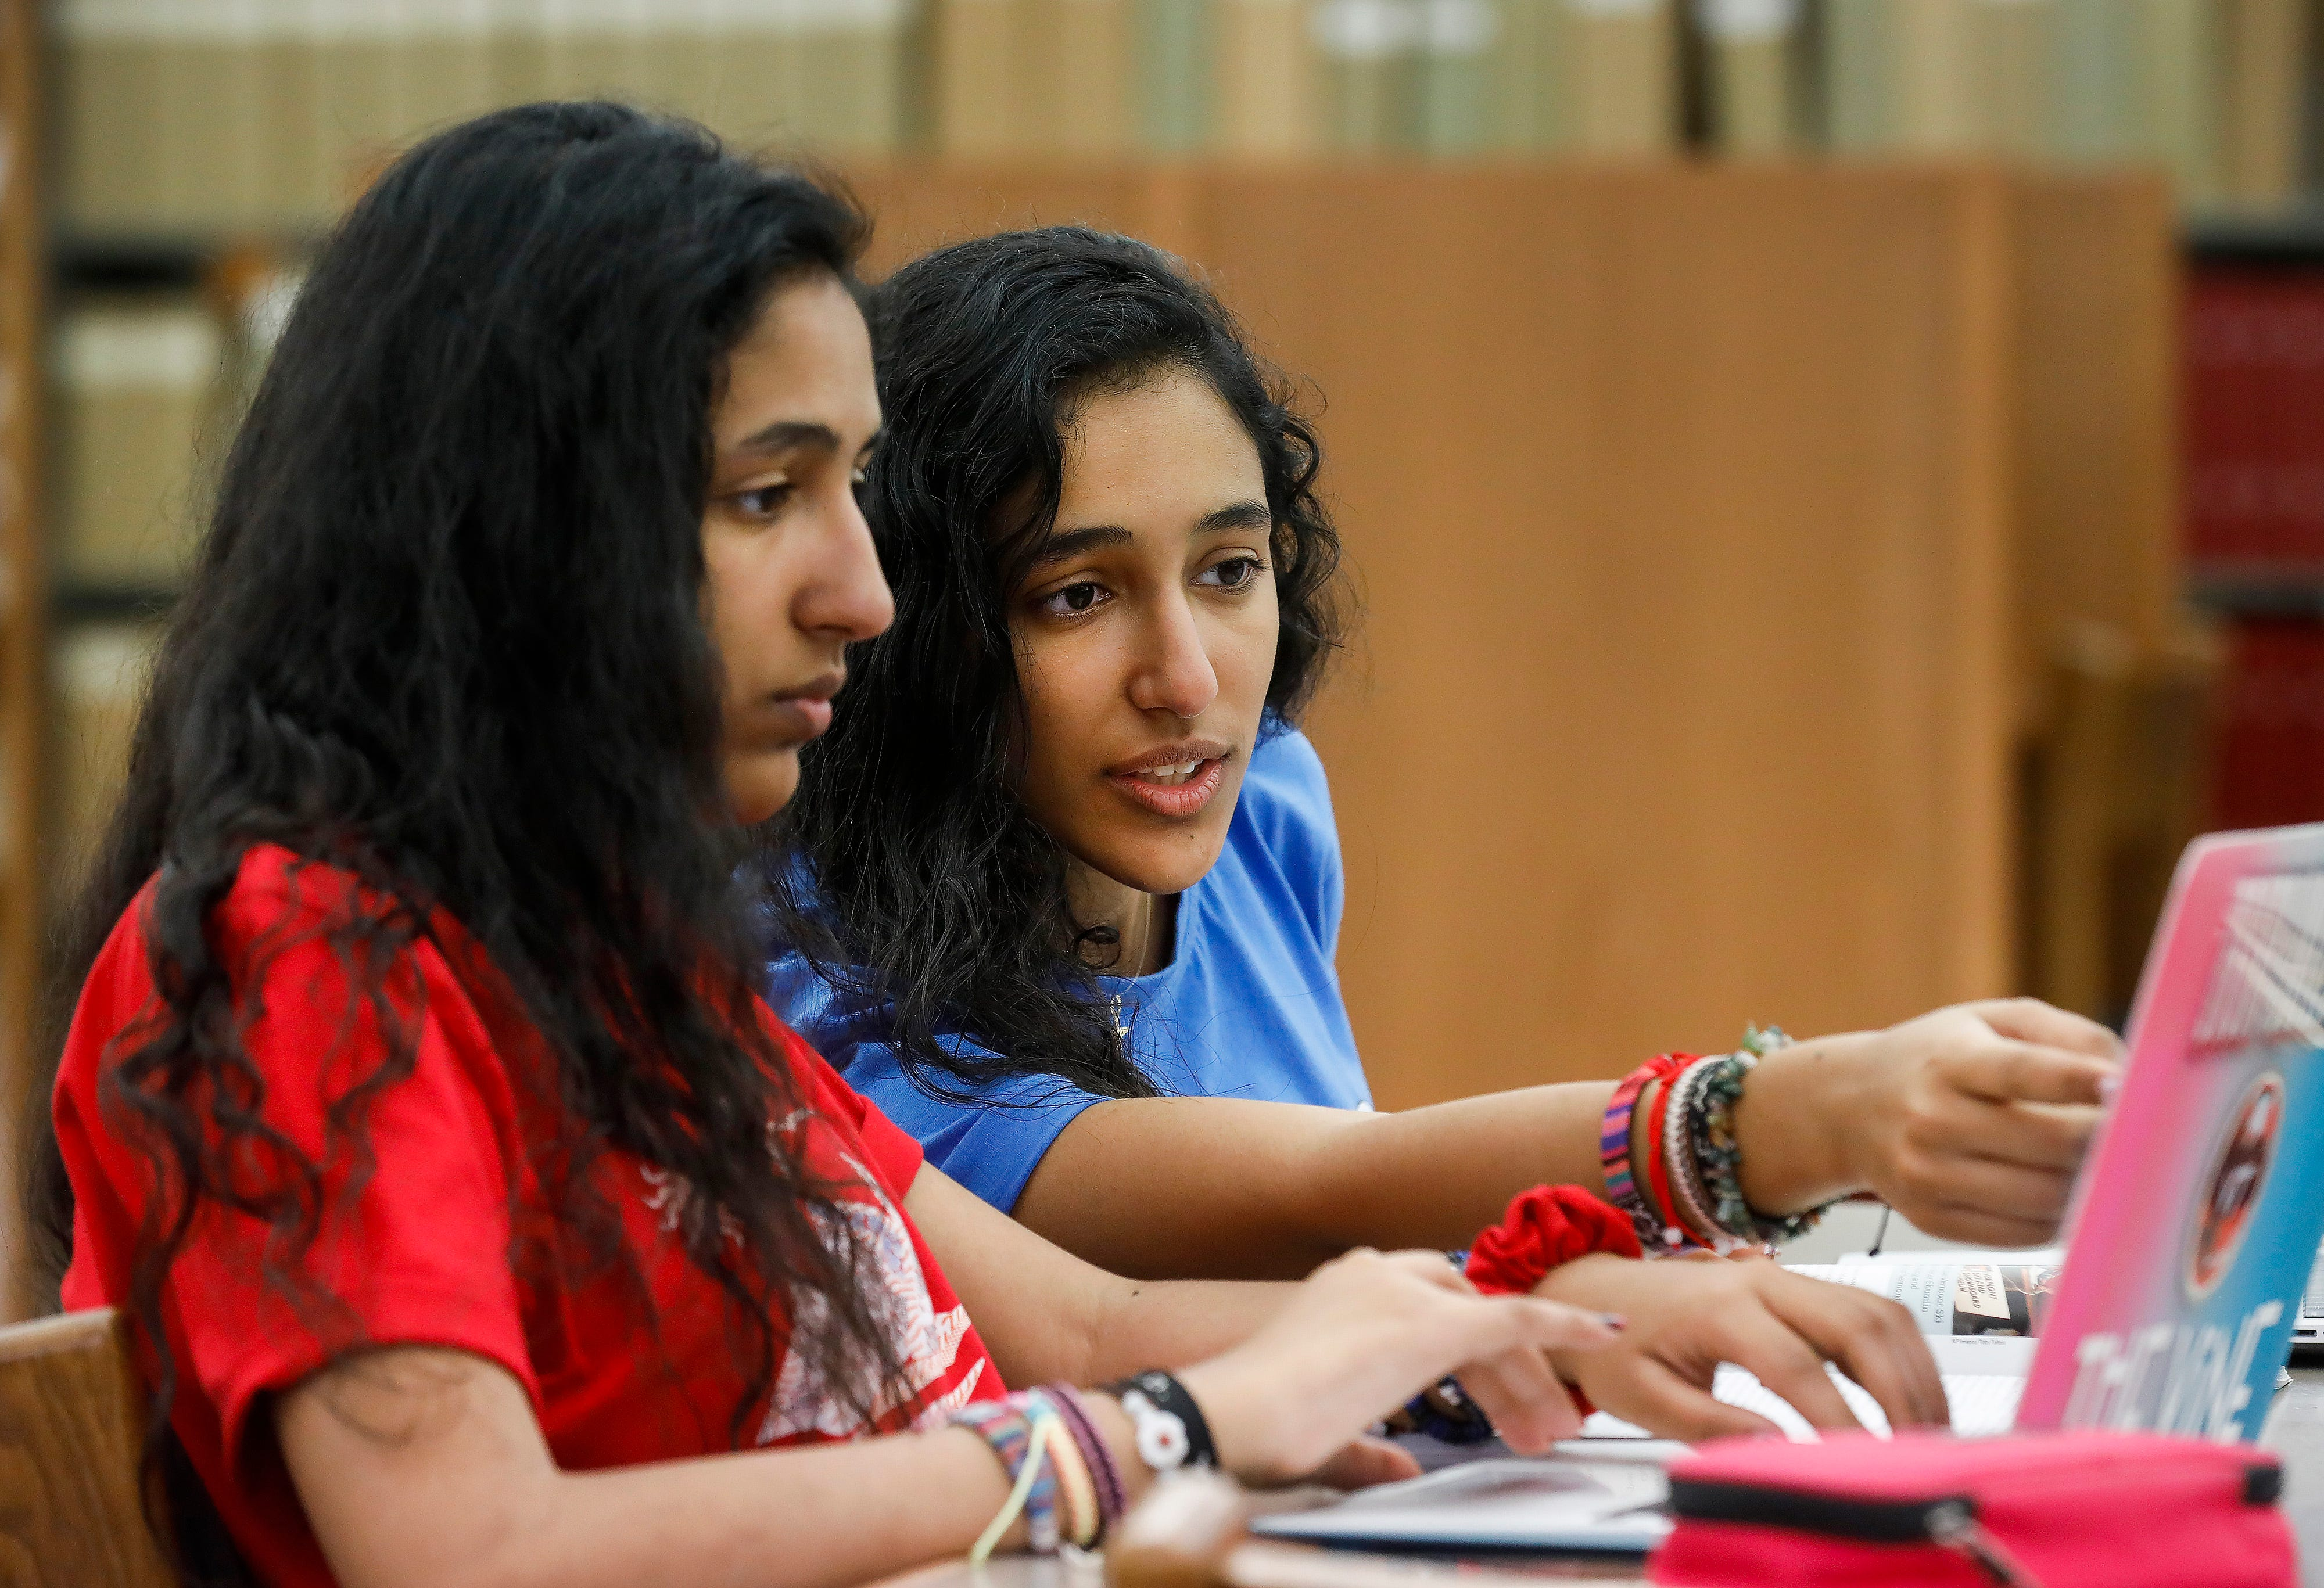 Velona, left, and Verna Tawfik, twin sisters from Egypt who are juniors at Drury University, study in the library on Thursday, April 18, 2019.